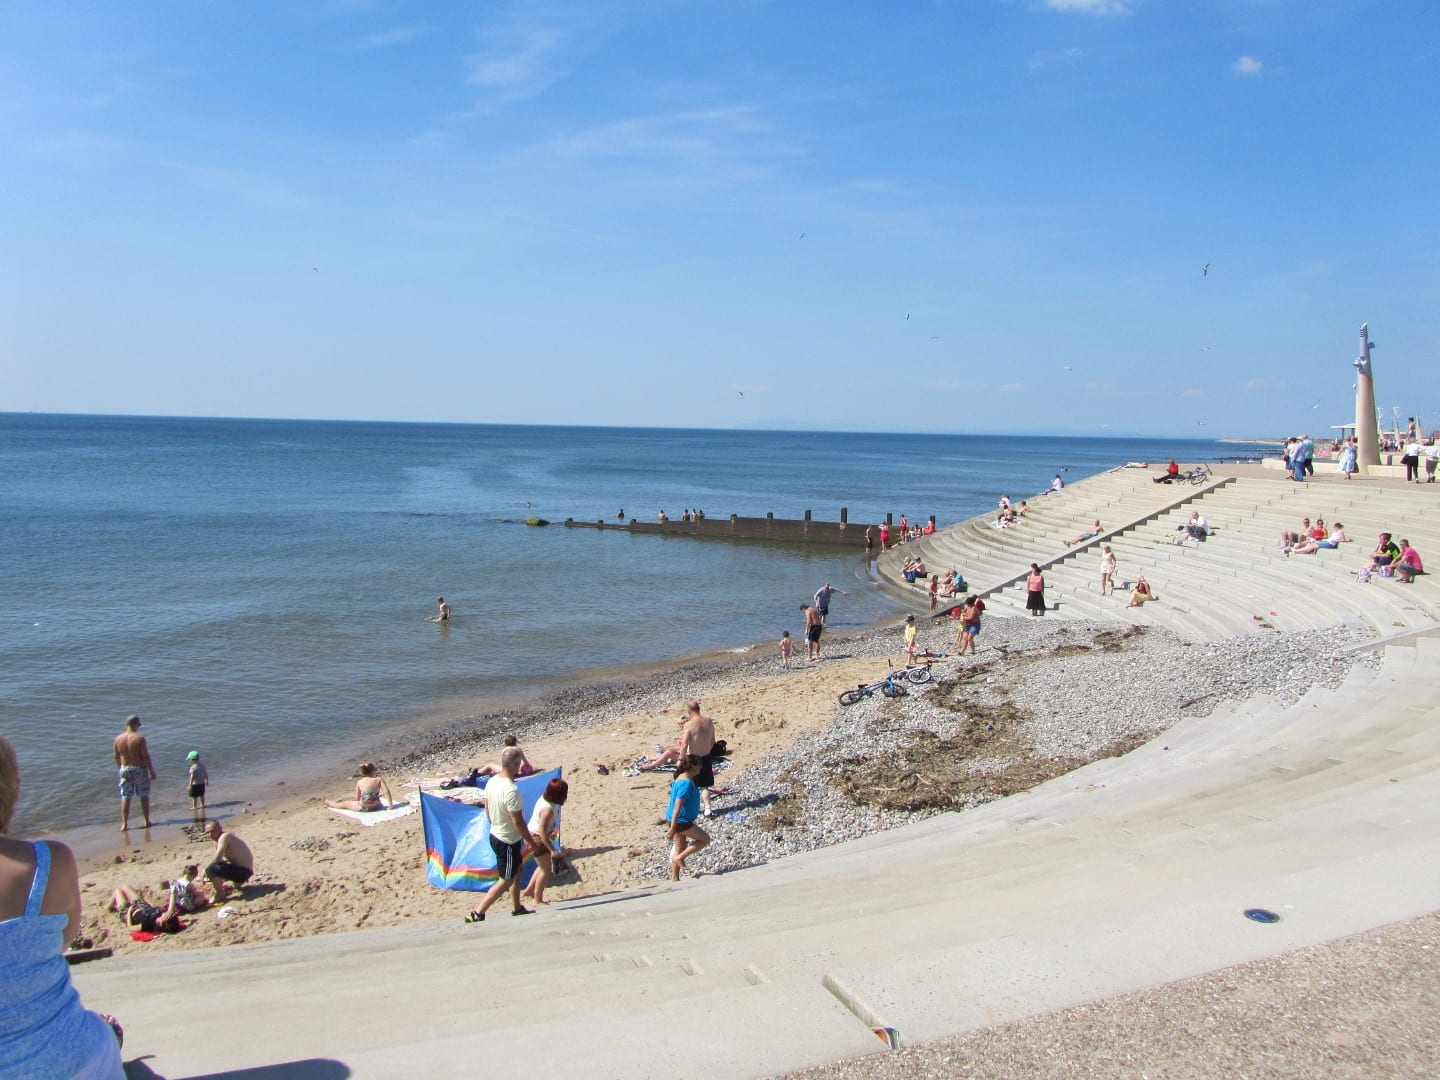 Cleveleys beach as it is today